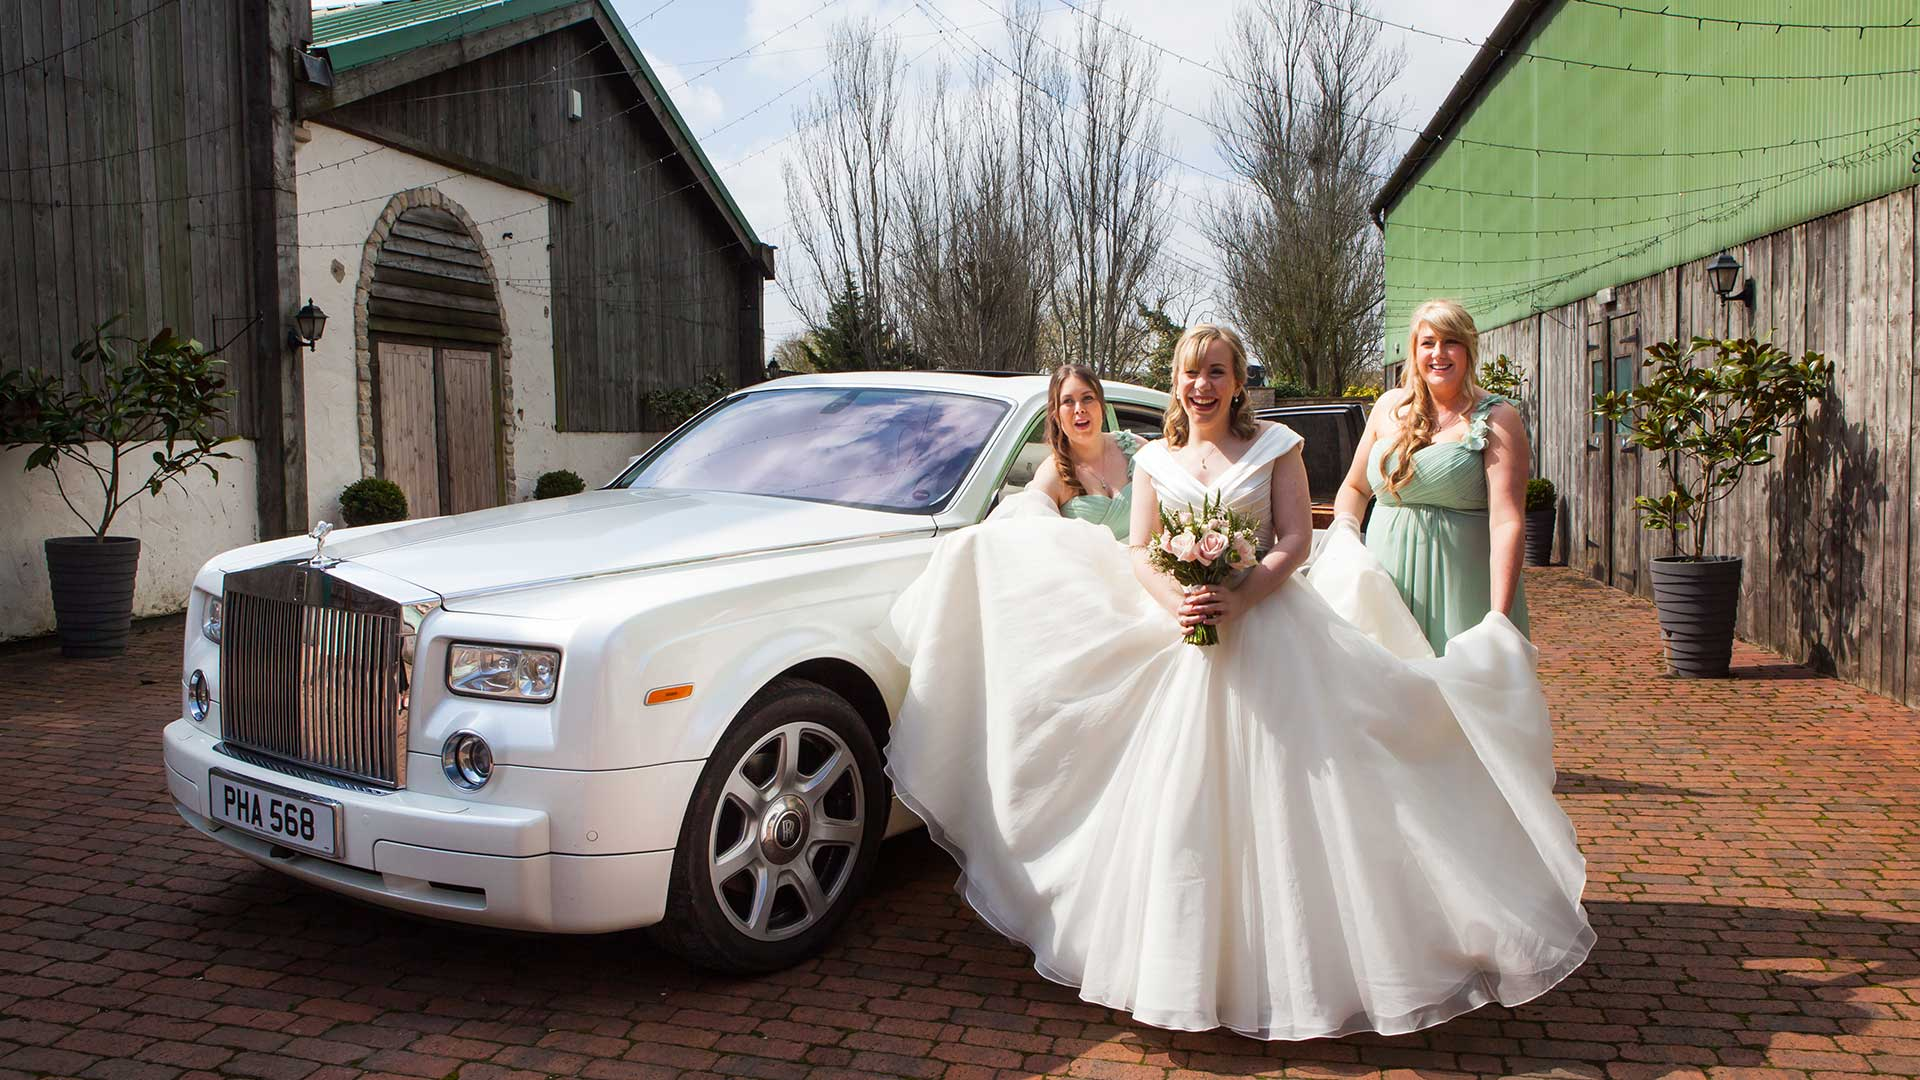 The bride and her bridesmaids with the Rolls-Royce Phantom